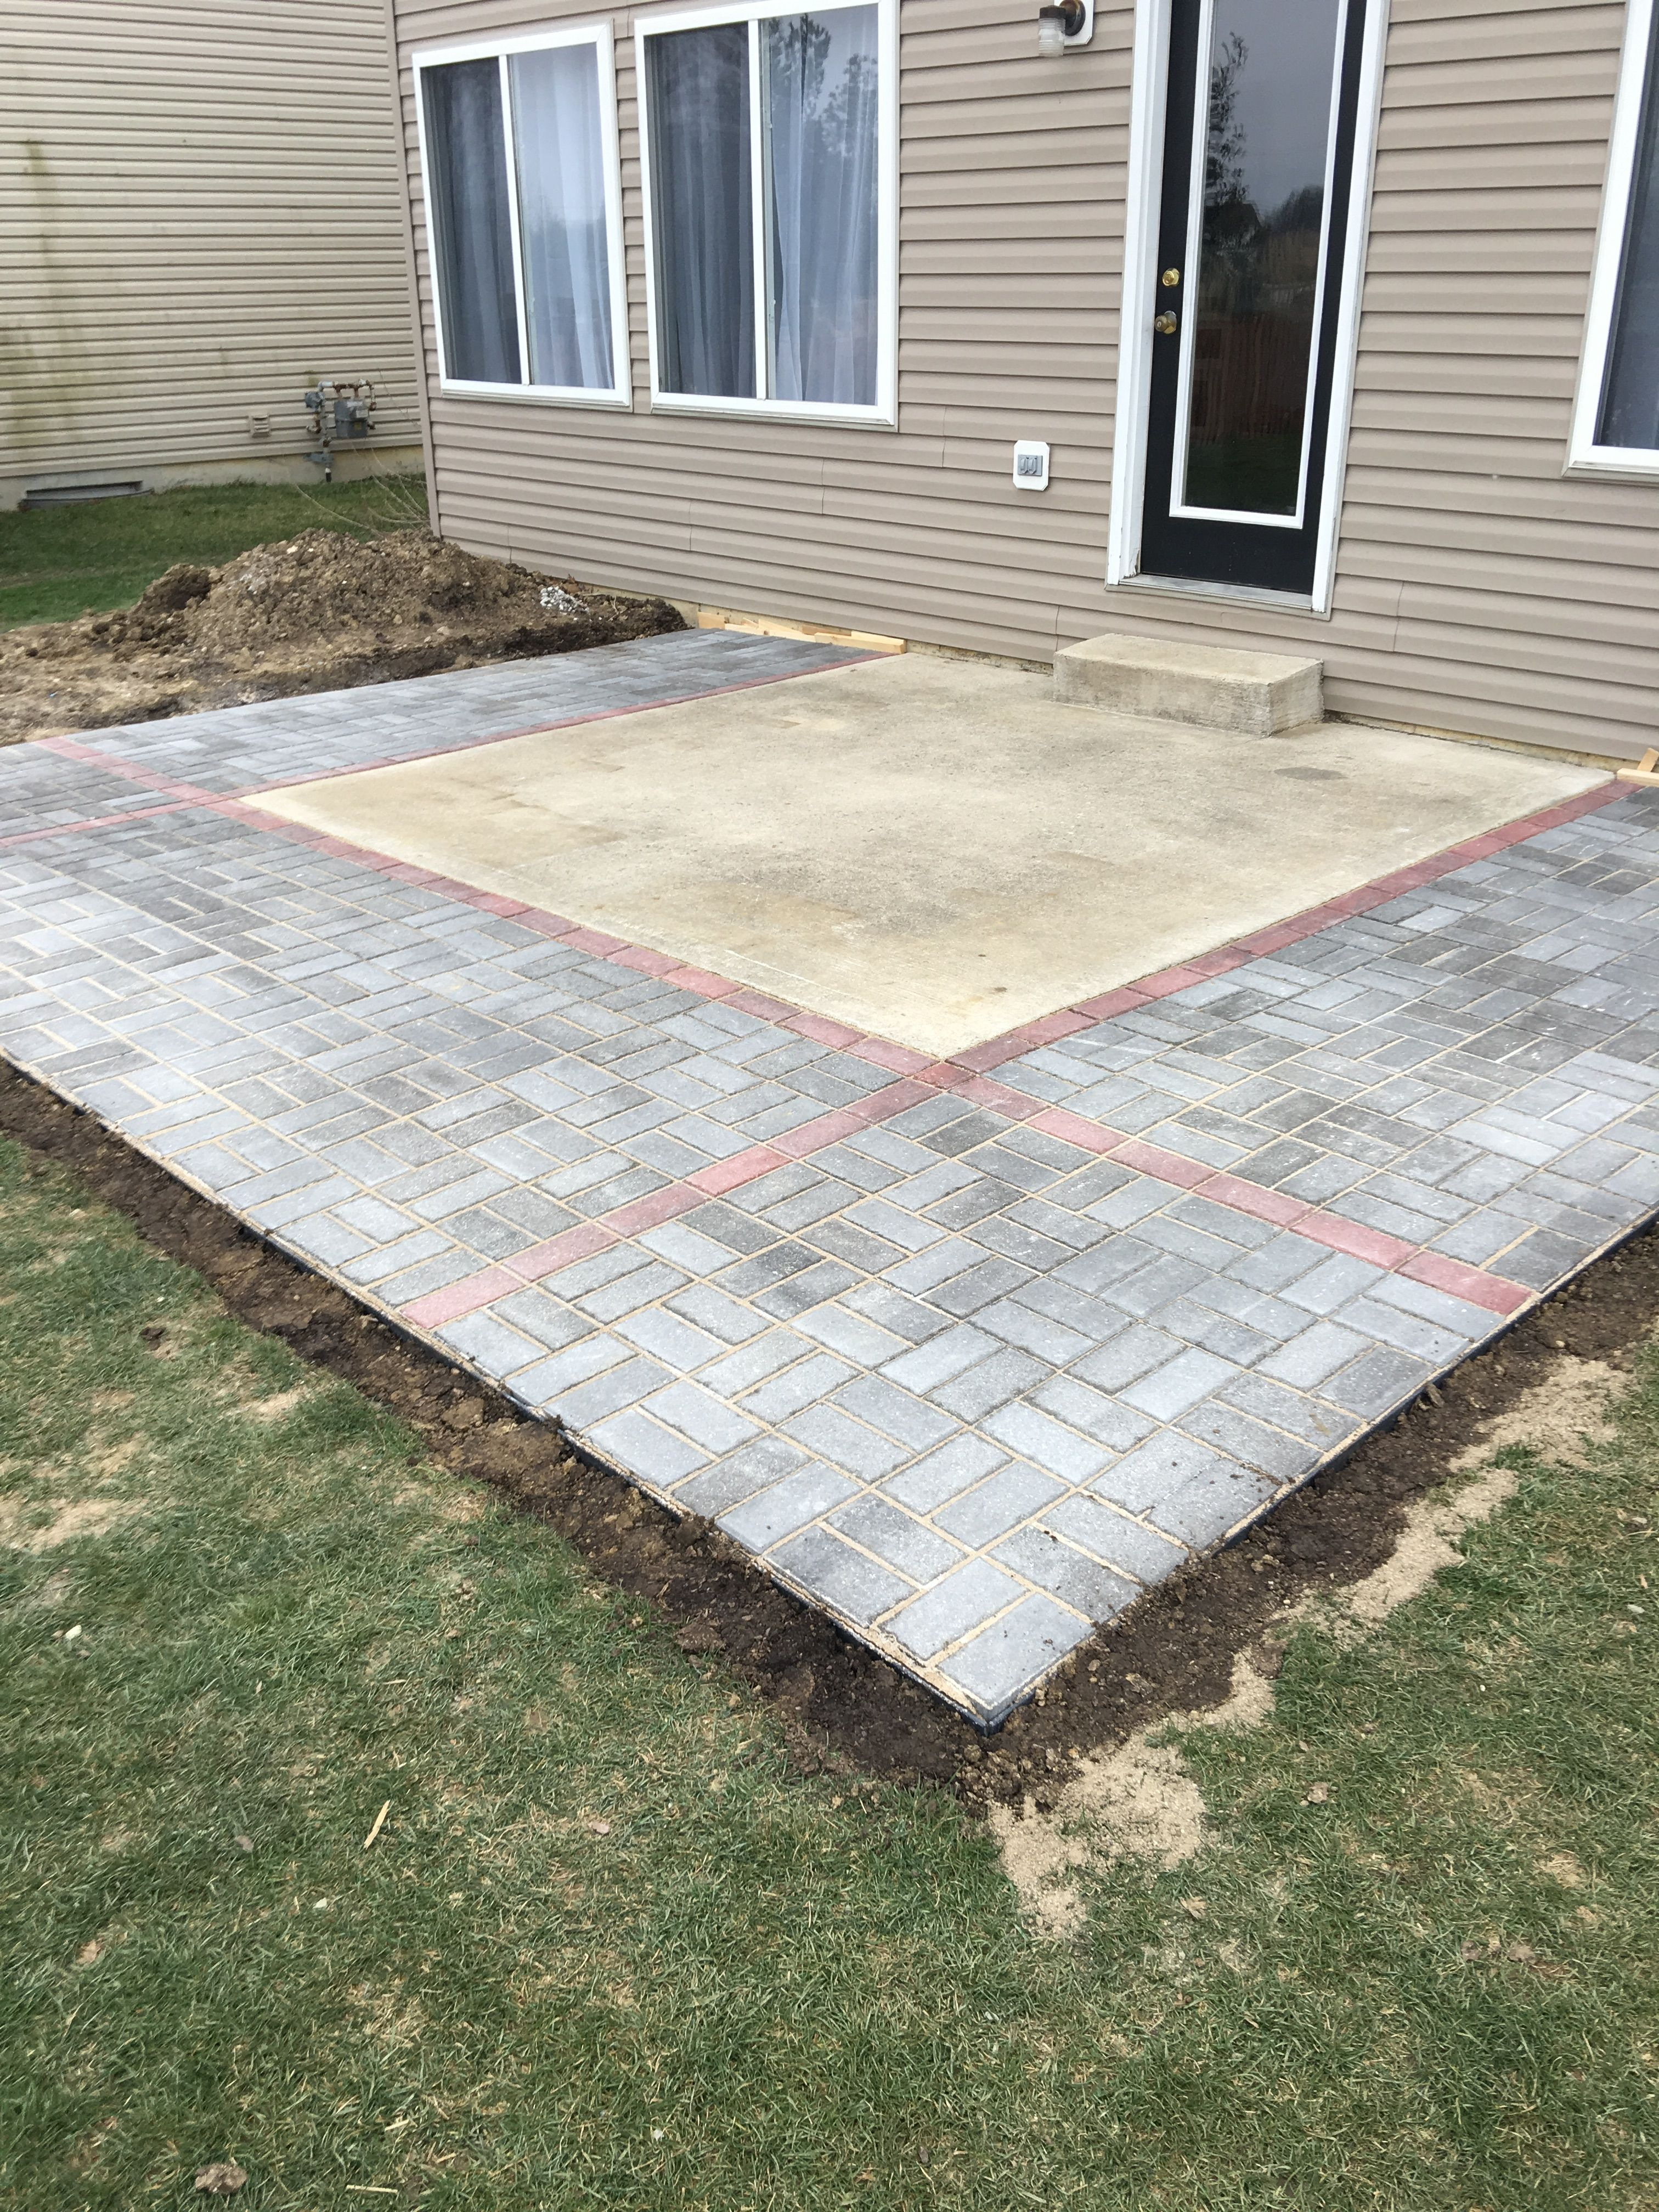 cool way to extend a concrete slab patio | house ideas in